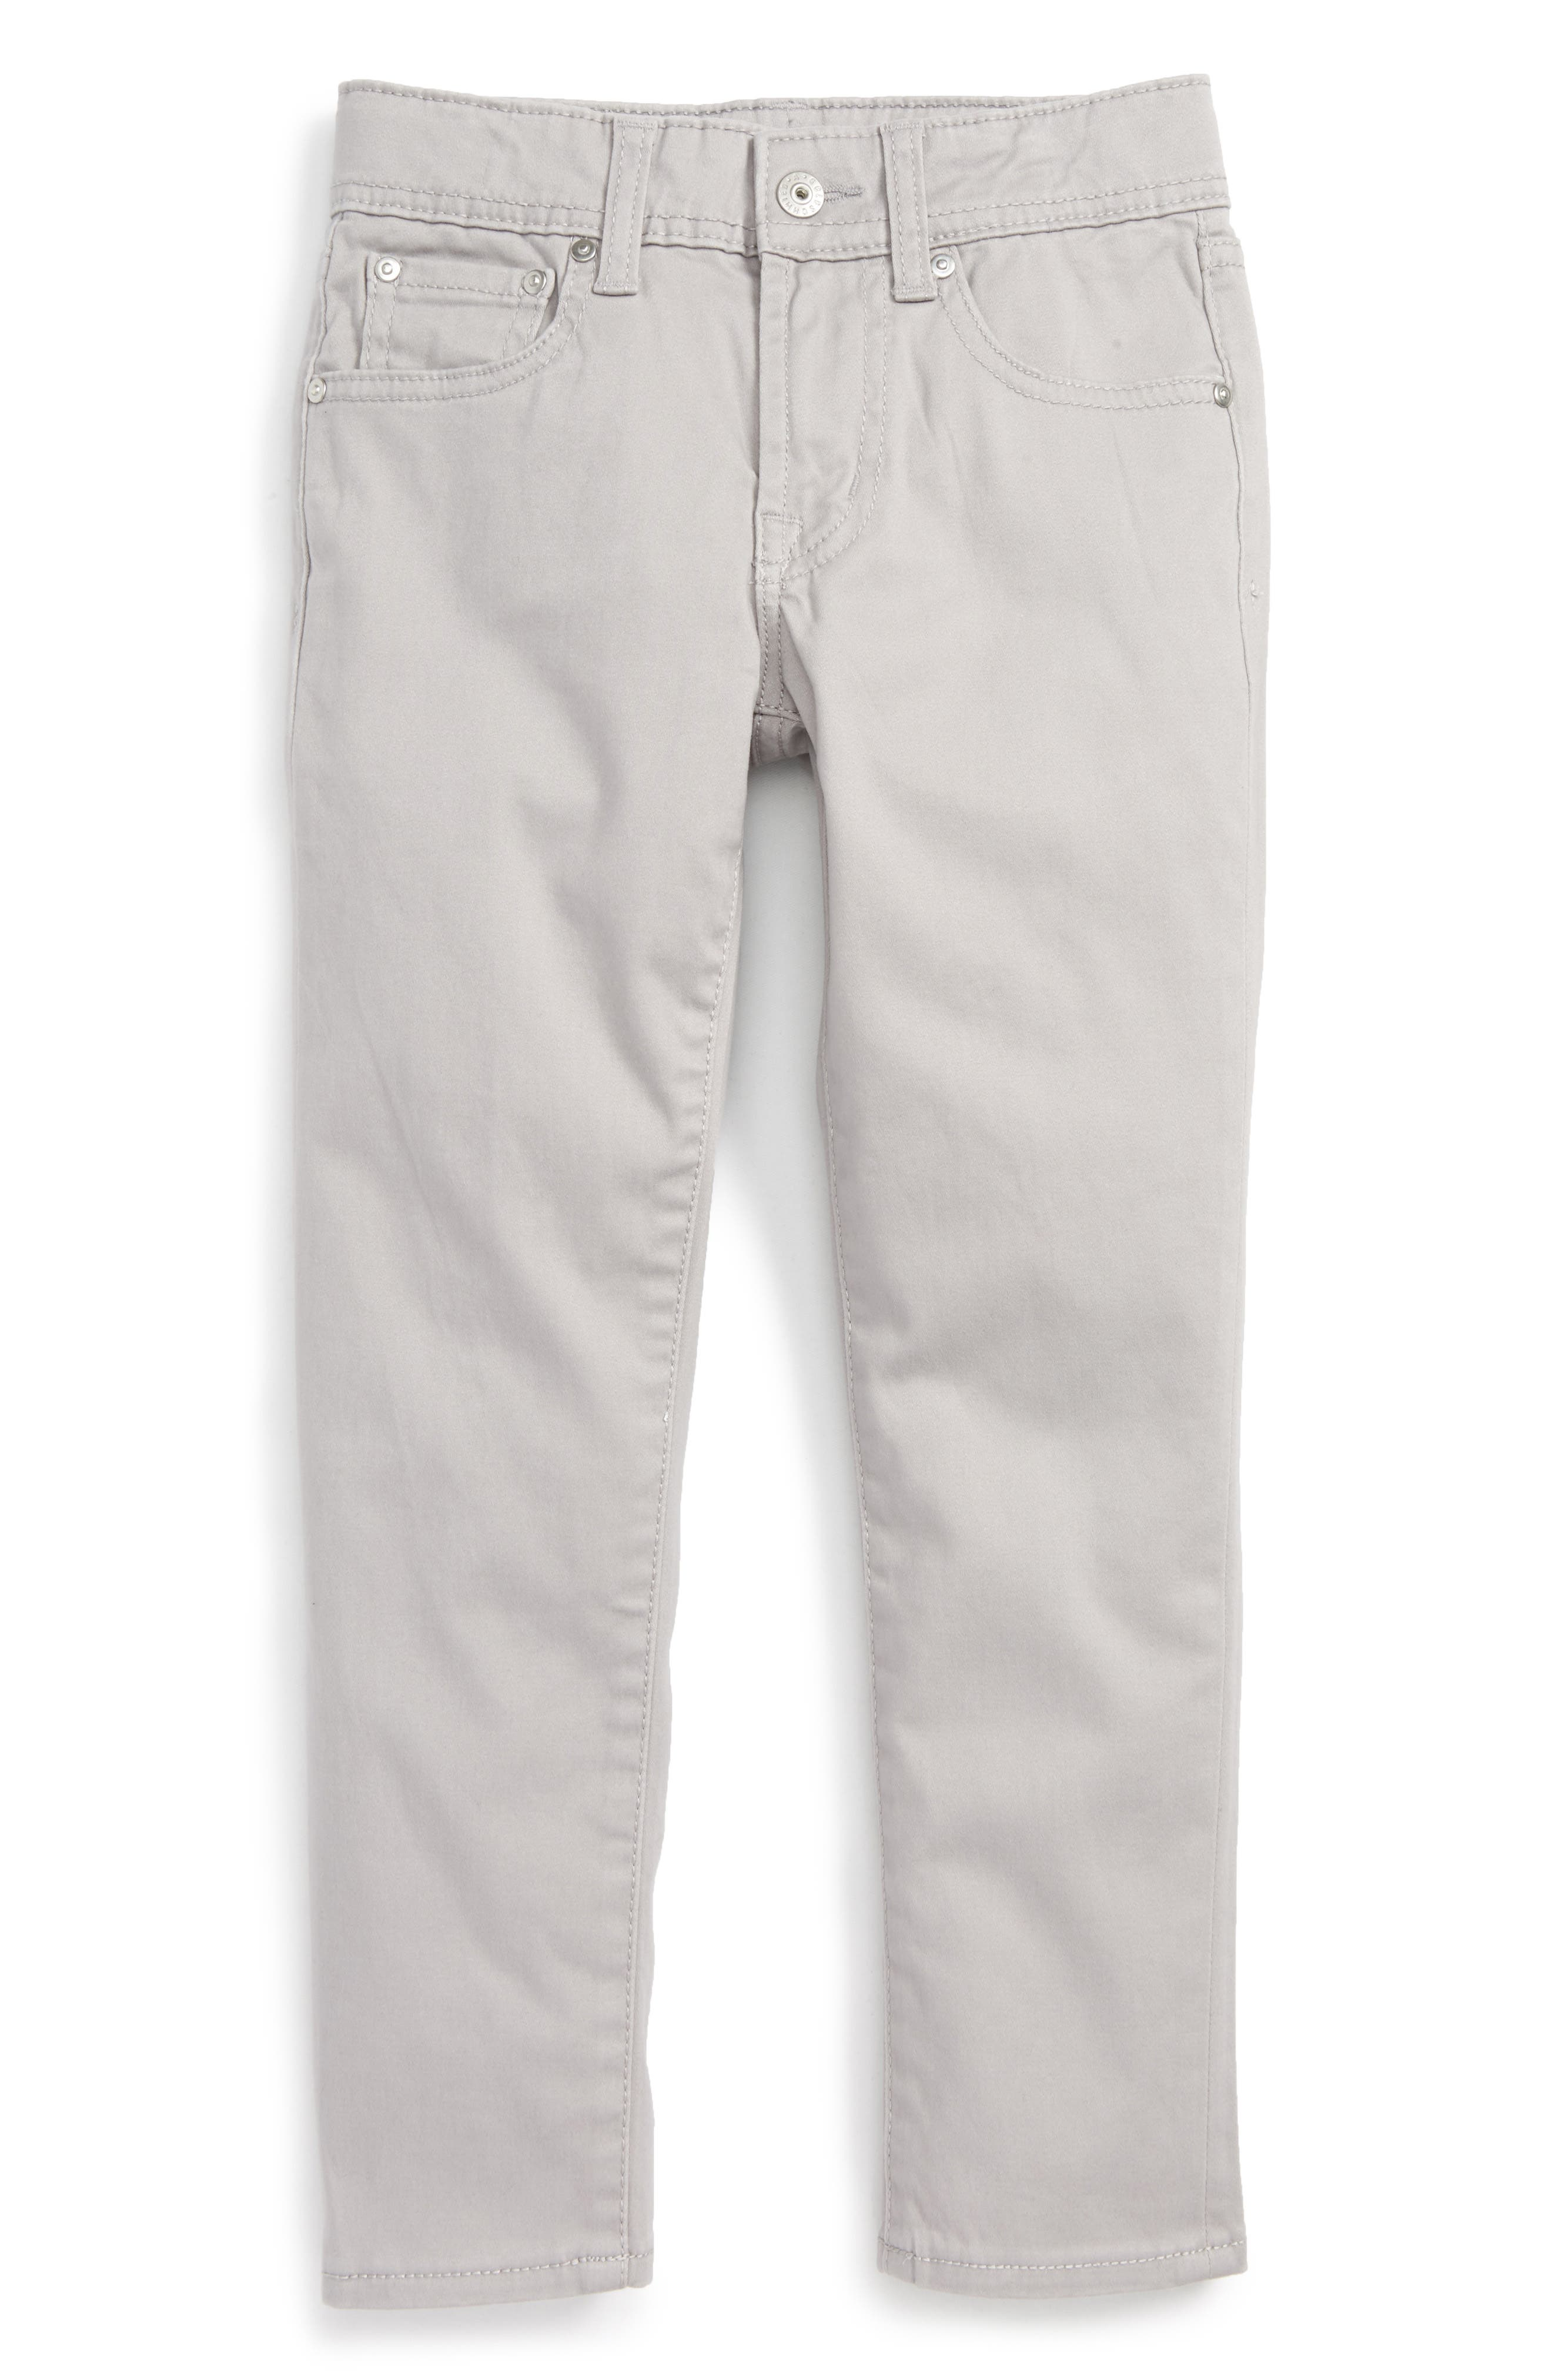 ag adriano goldschmied kids The Stryker Luxe Slim Straight Leg Jeans (Toddler Boys, Little Boys & Big Boys)